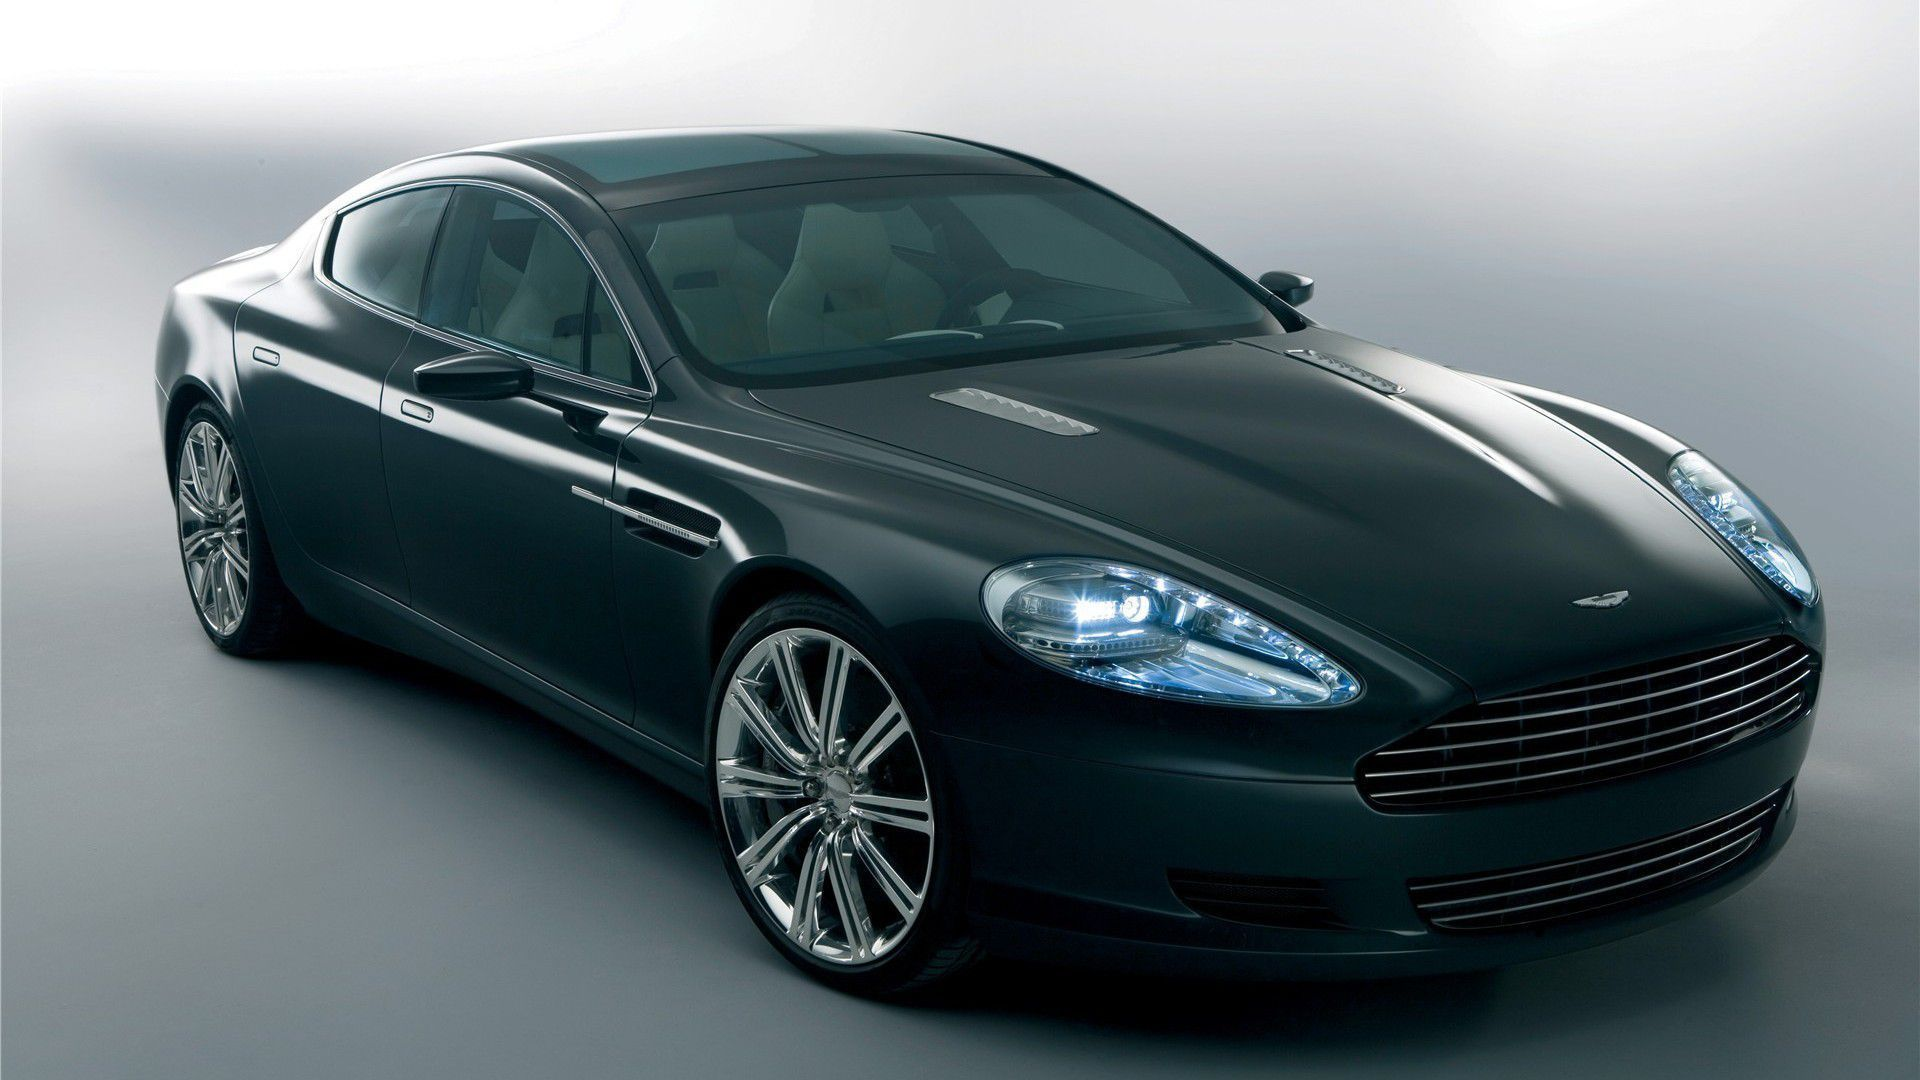 Aston Martin Db9 Computer Wallpaper